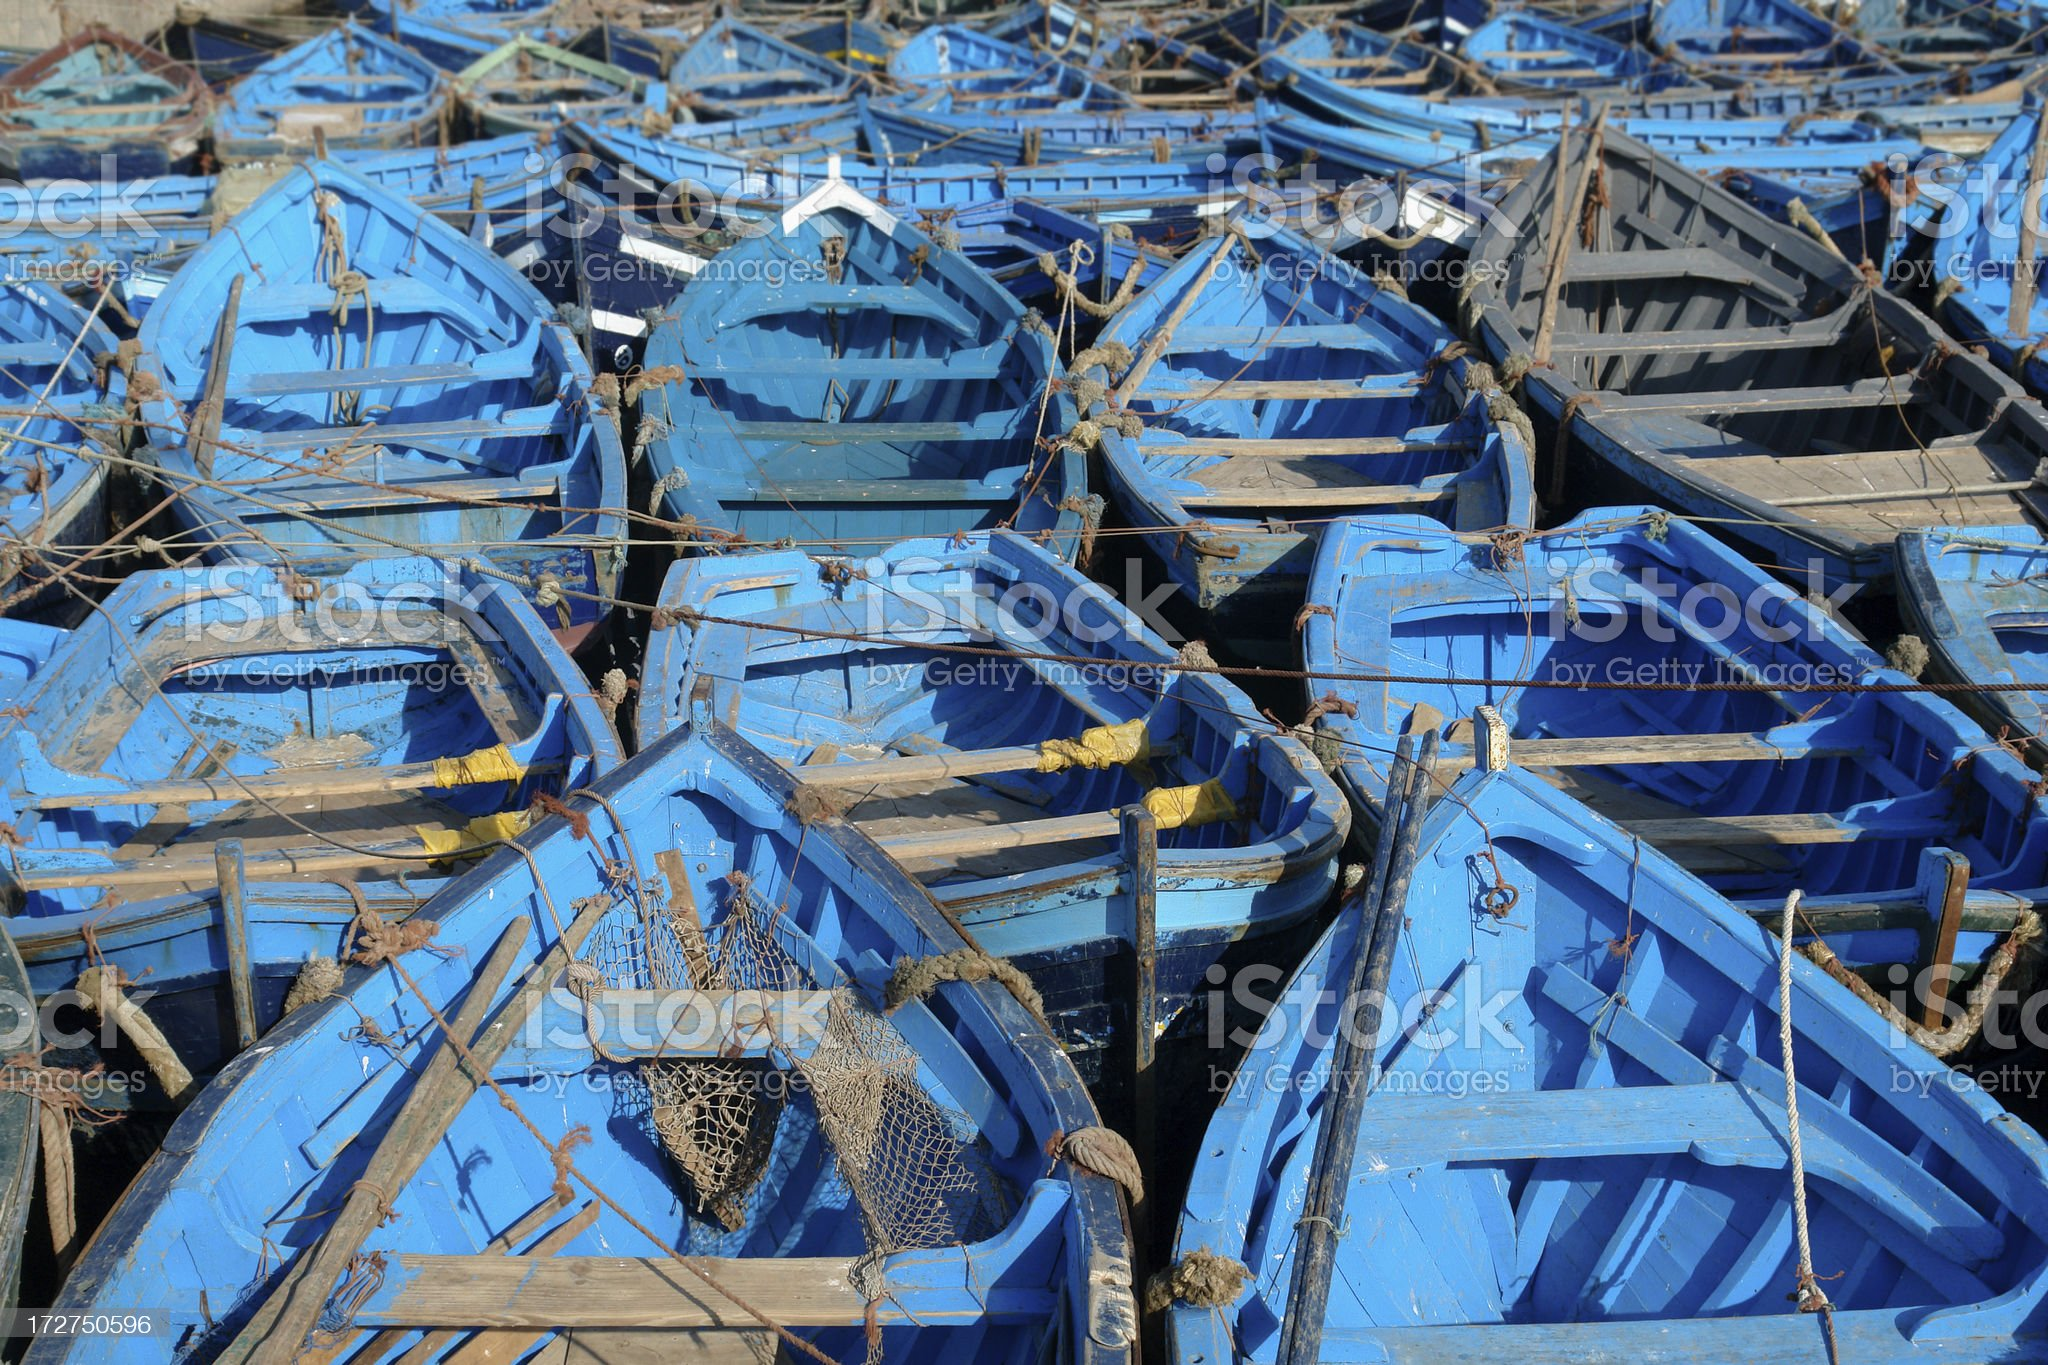 Fishing Boats in Essaouria Port, Morocco royalty-free stock photo